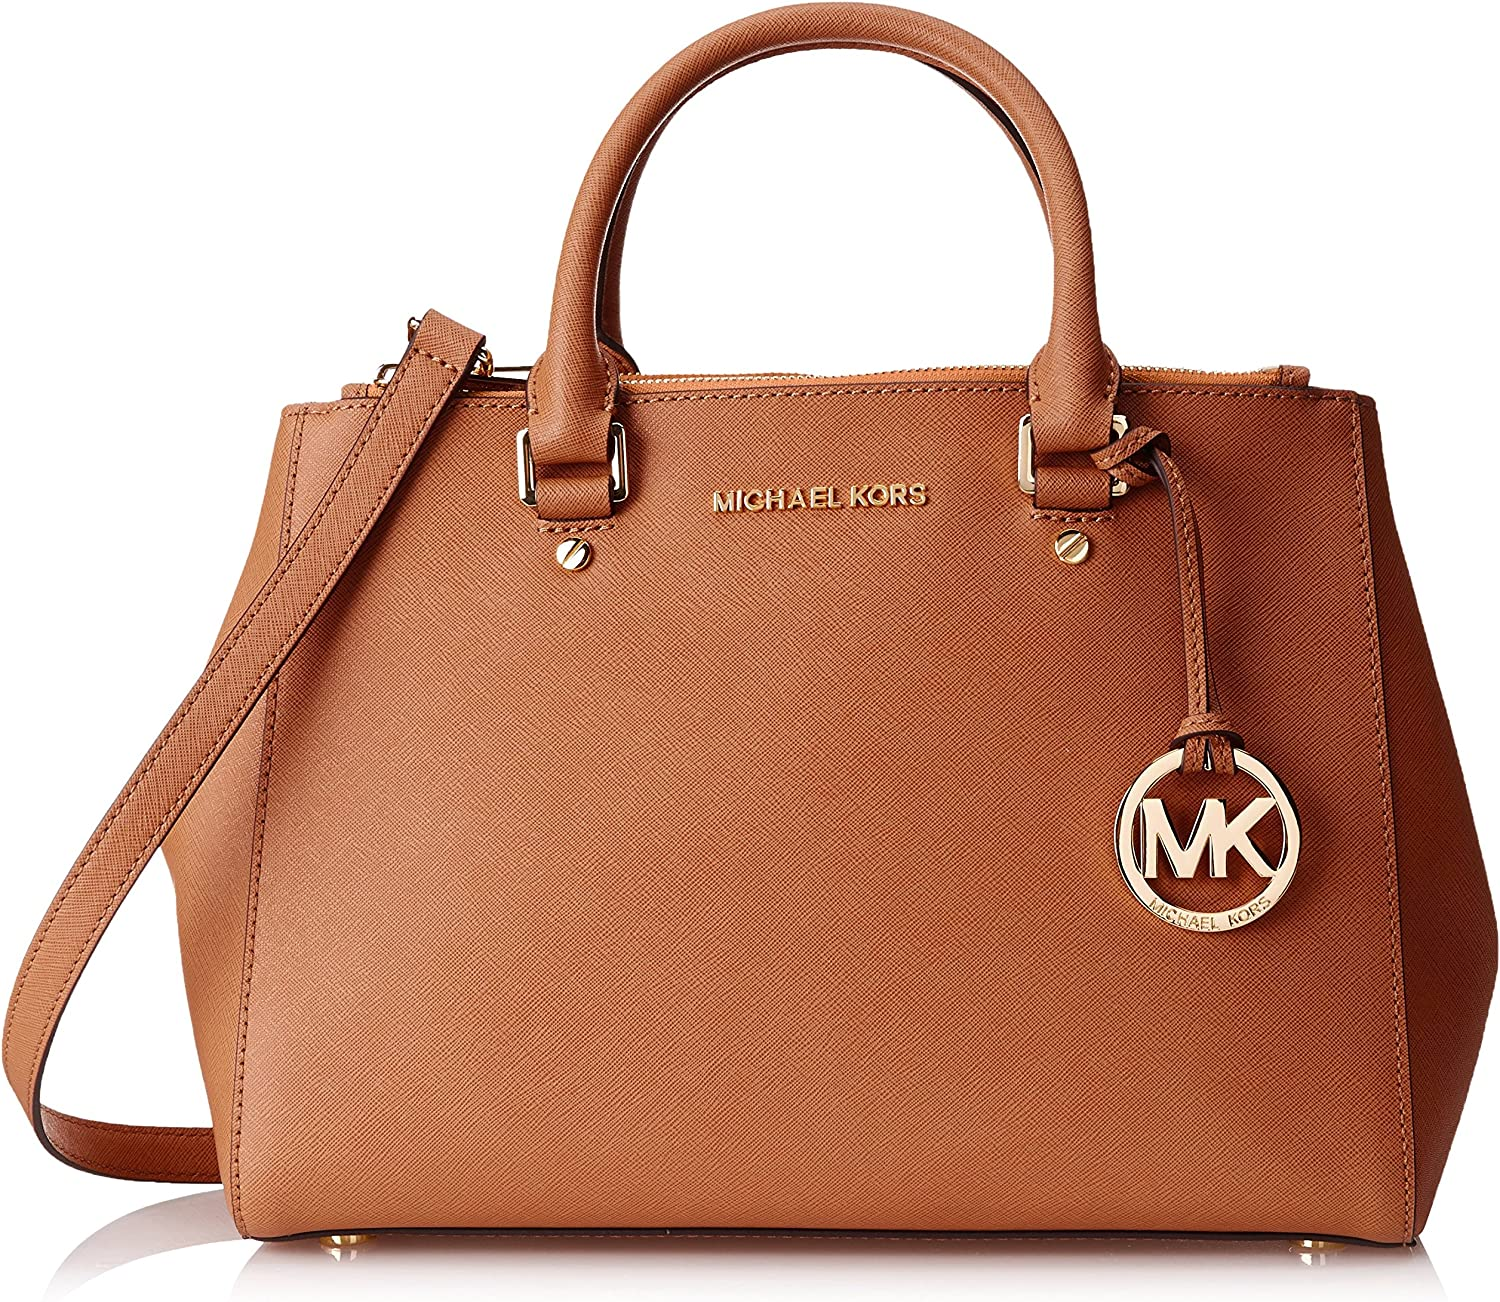 sac sutton michael kors